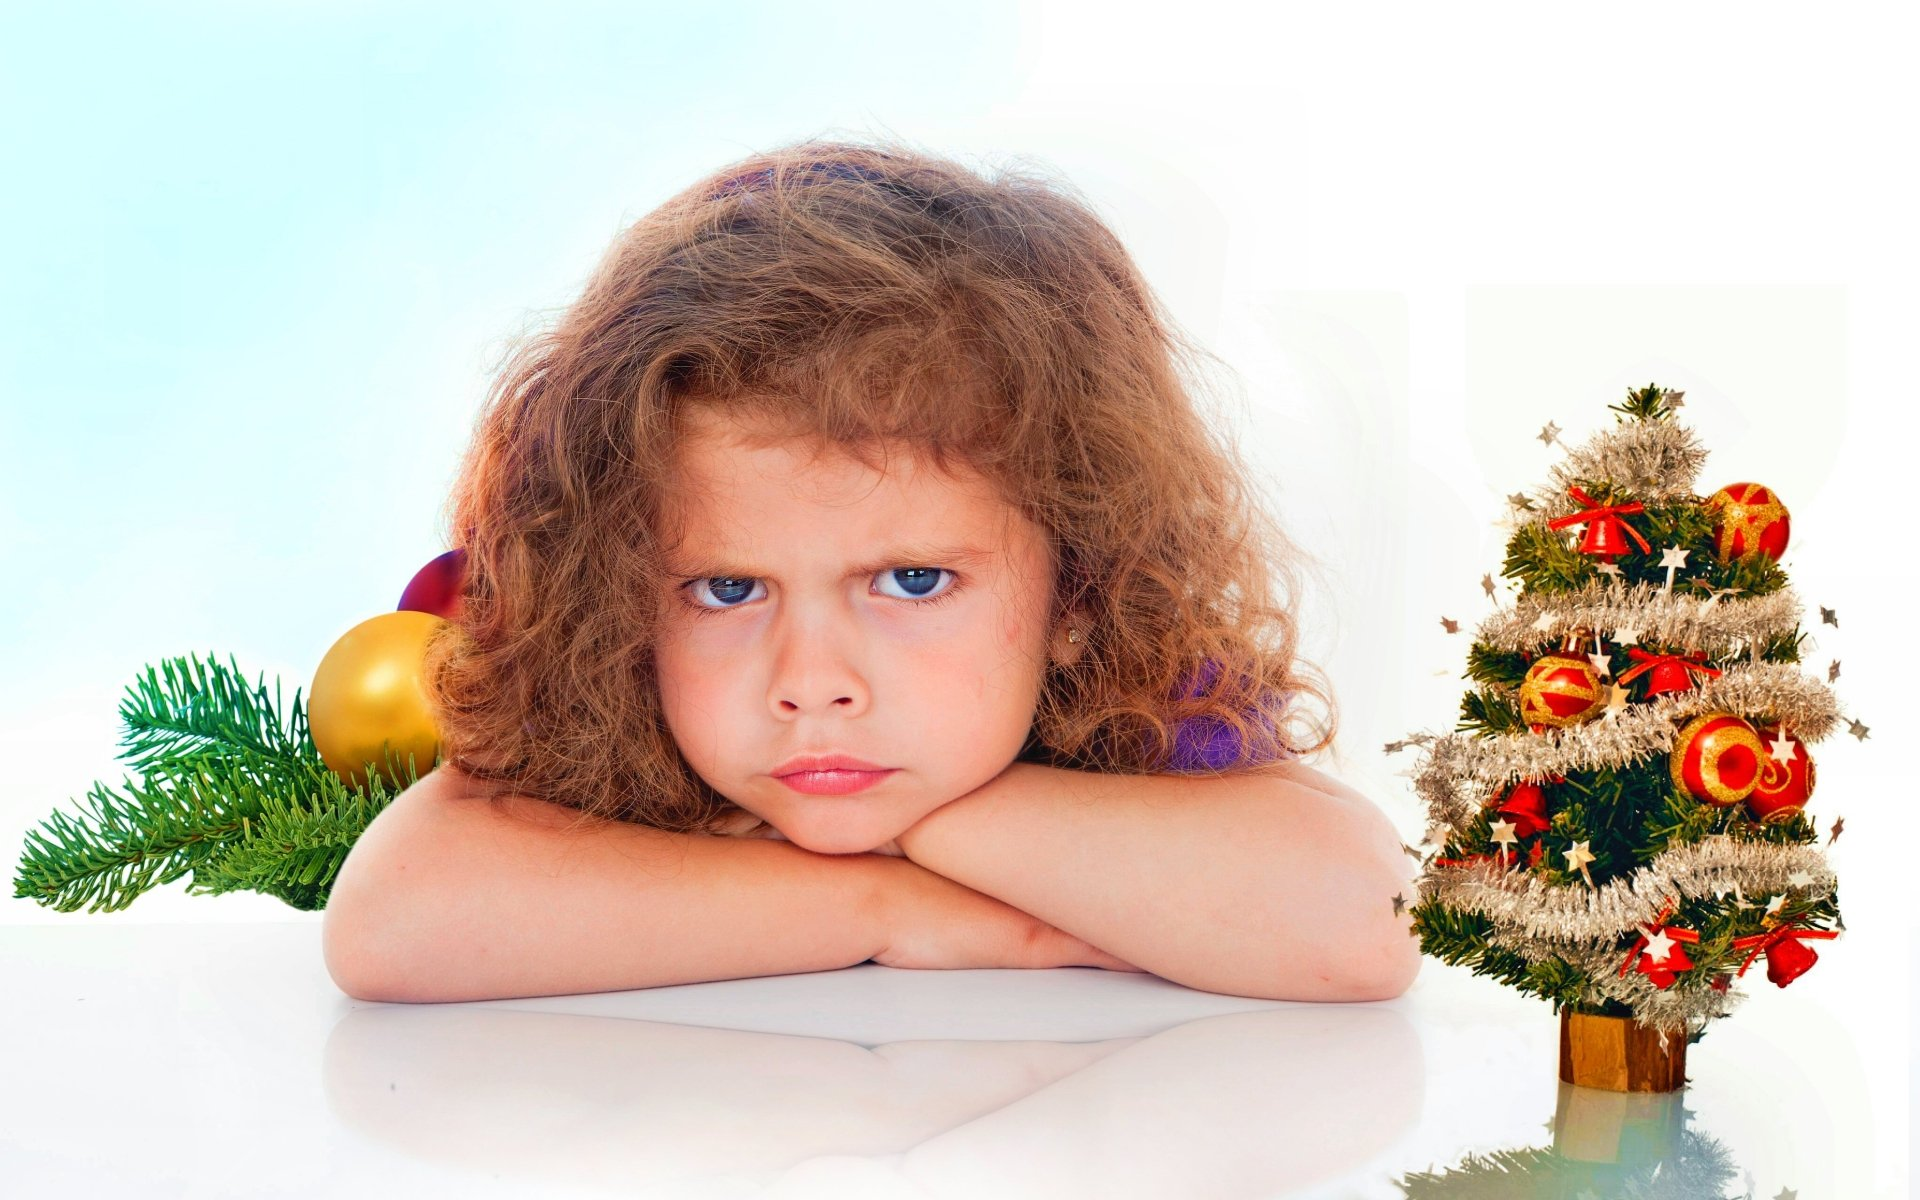 Holiday - Christmas  Colorful Child Wallpaper